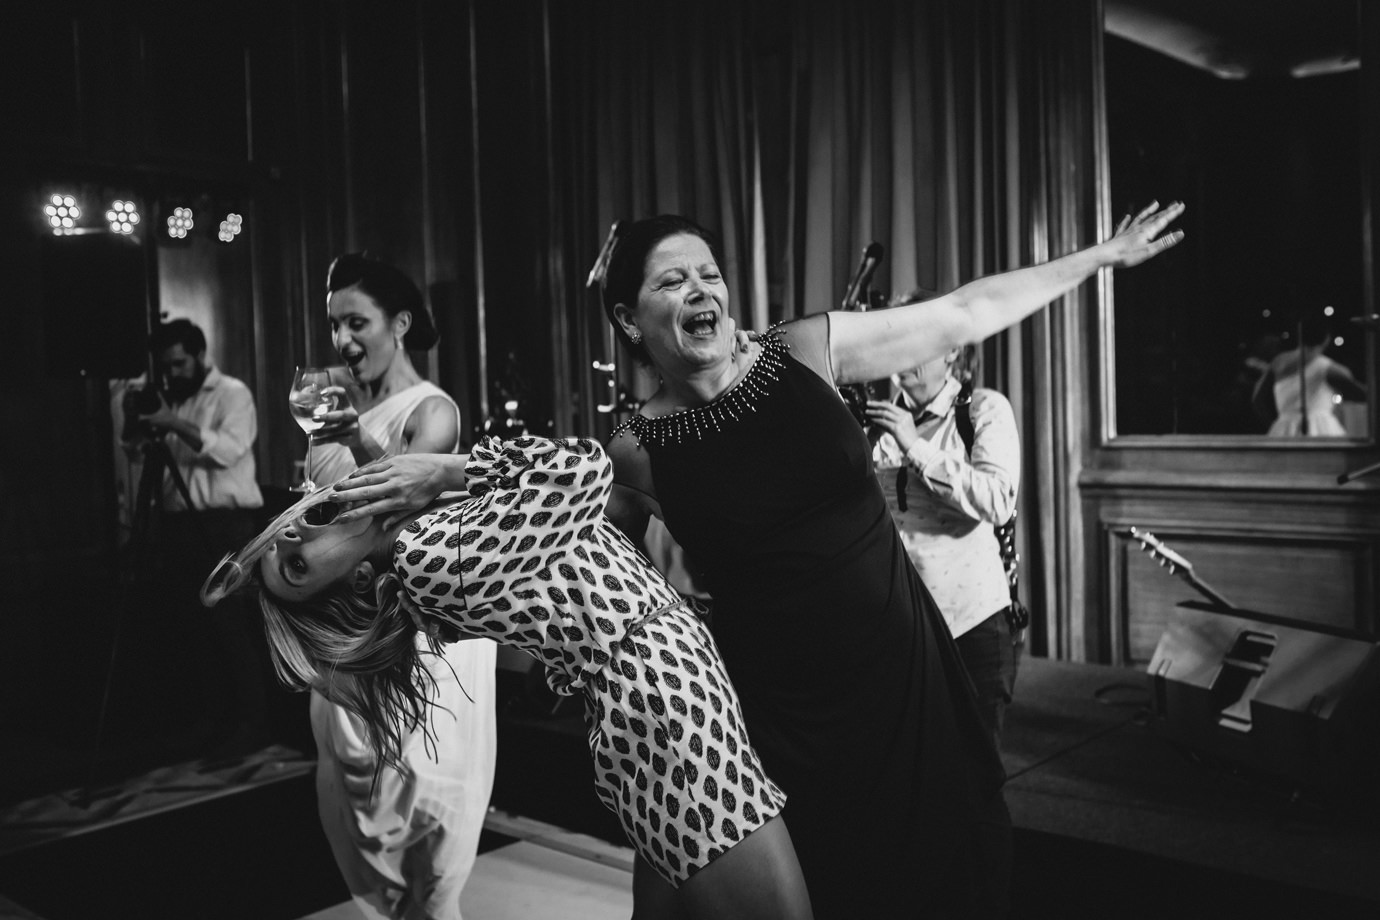 The dip. Dancing at Claridges, documentary wedding photography